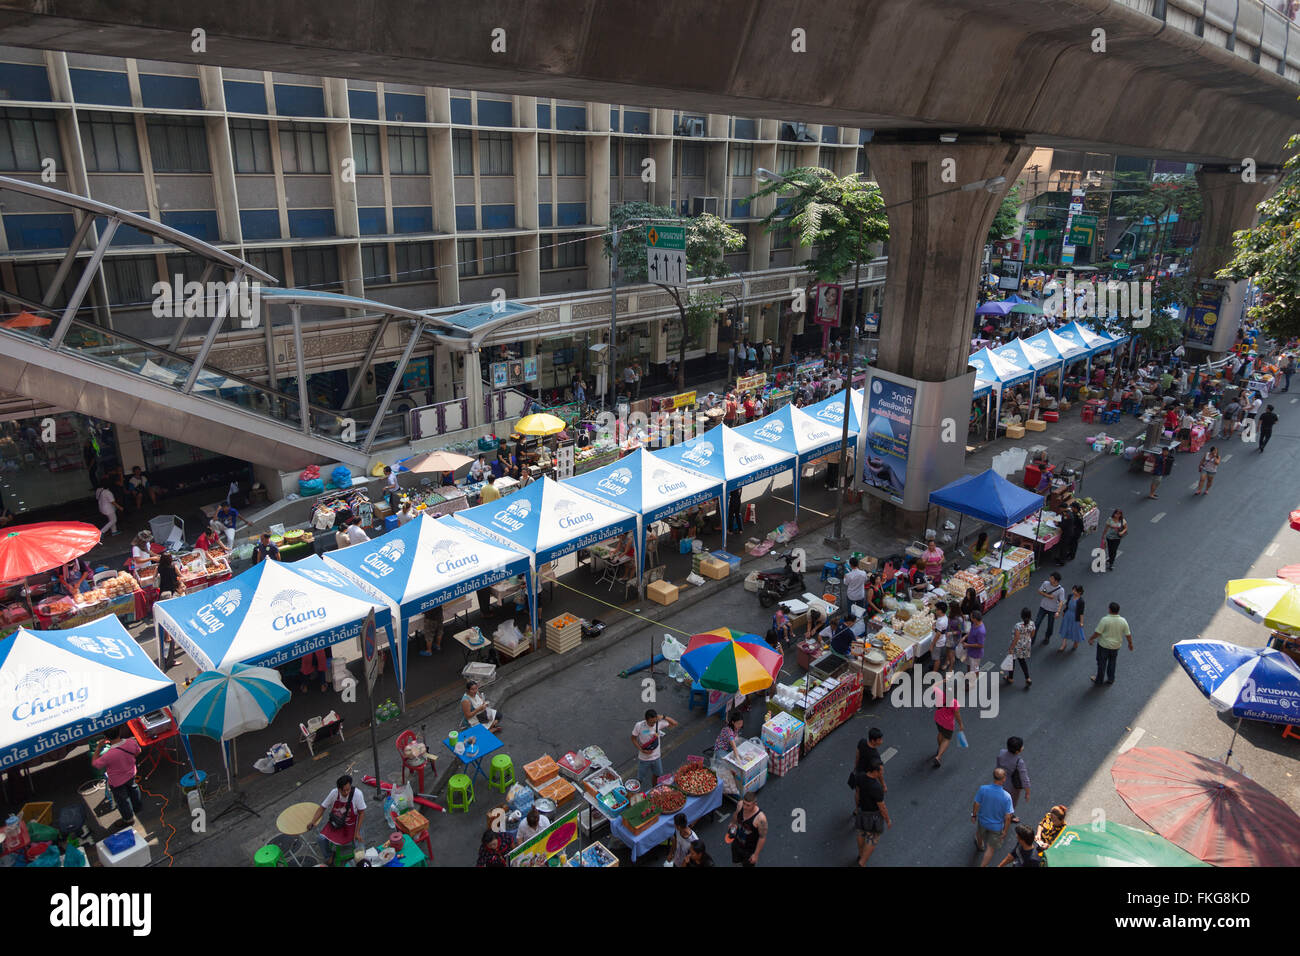 On Sunday, the Sala Daeng walking street (Bangkok) overrun with food stalls. Sala Daeng, voie publique piétonne - Stock Image